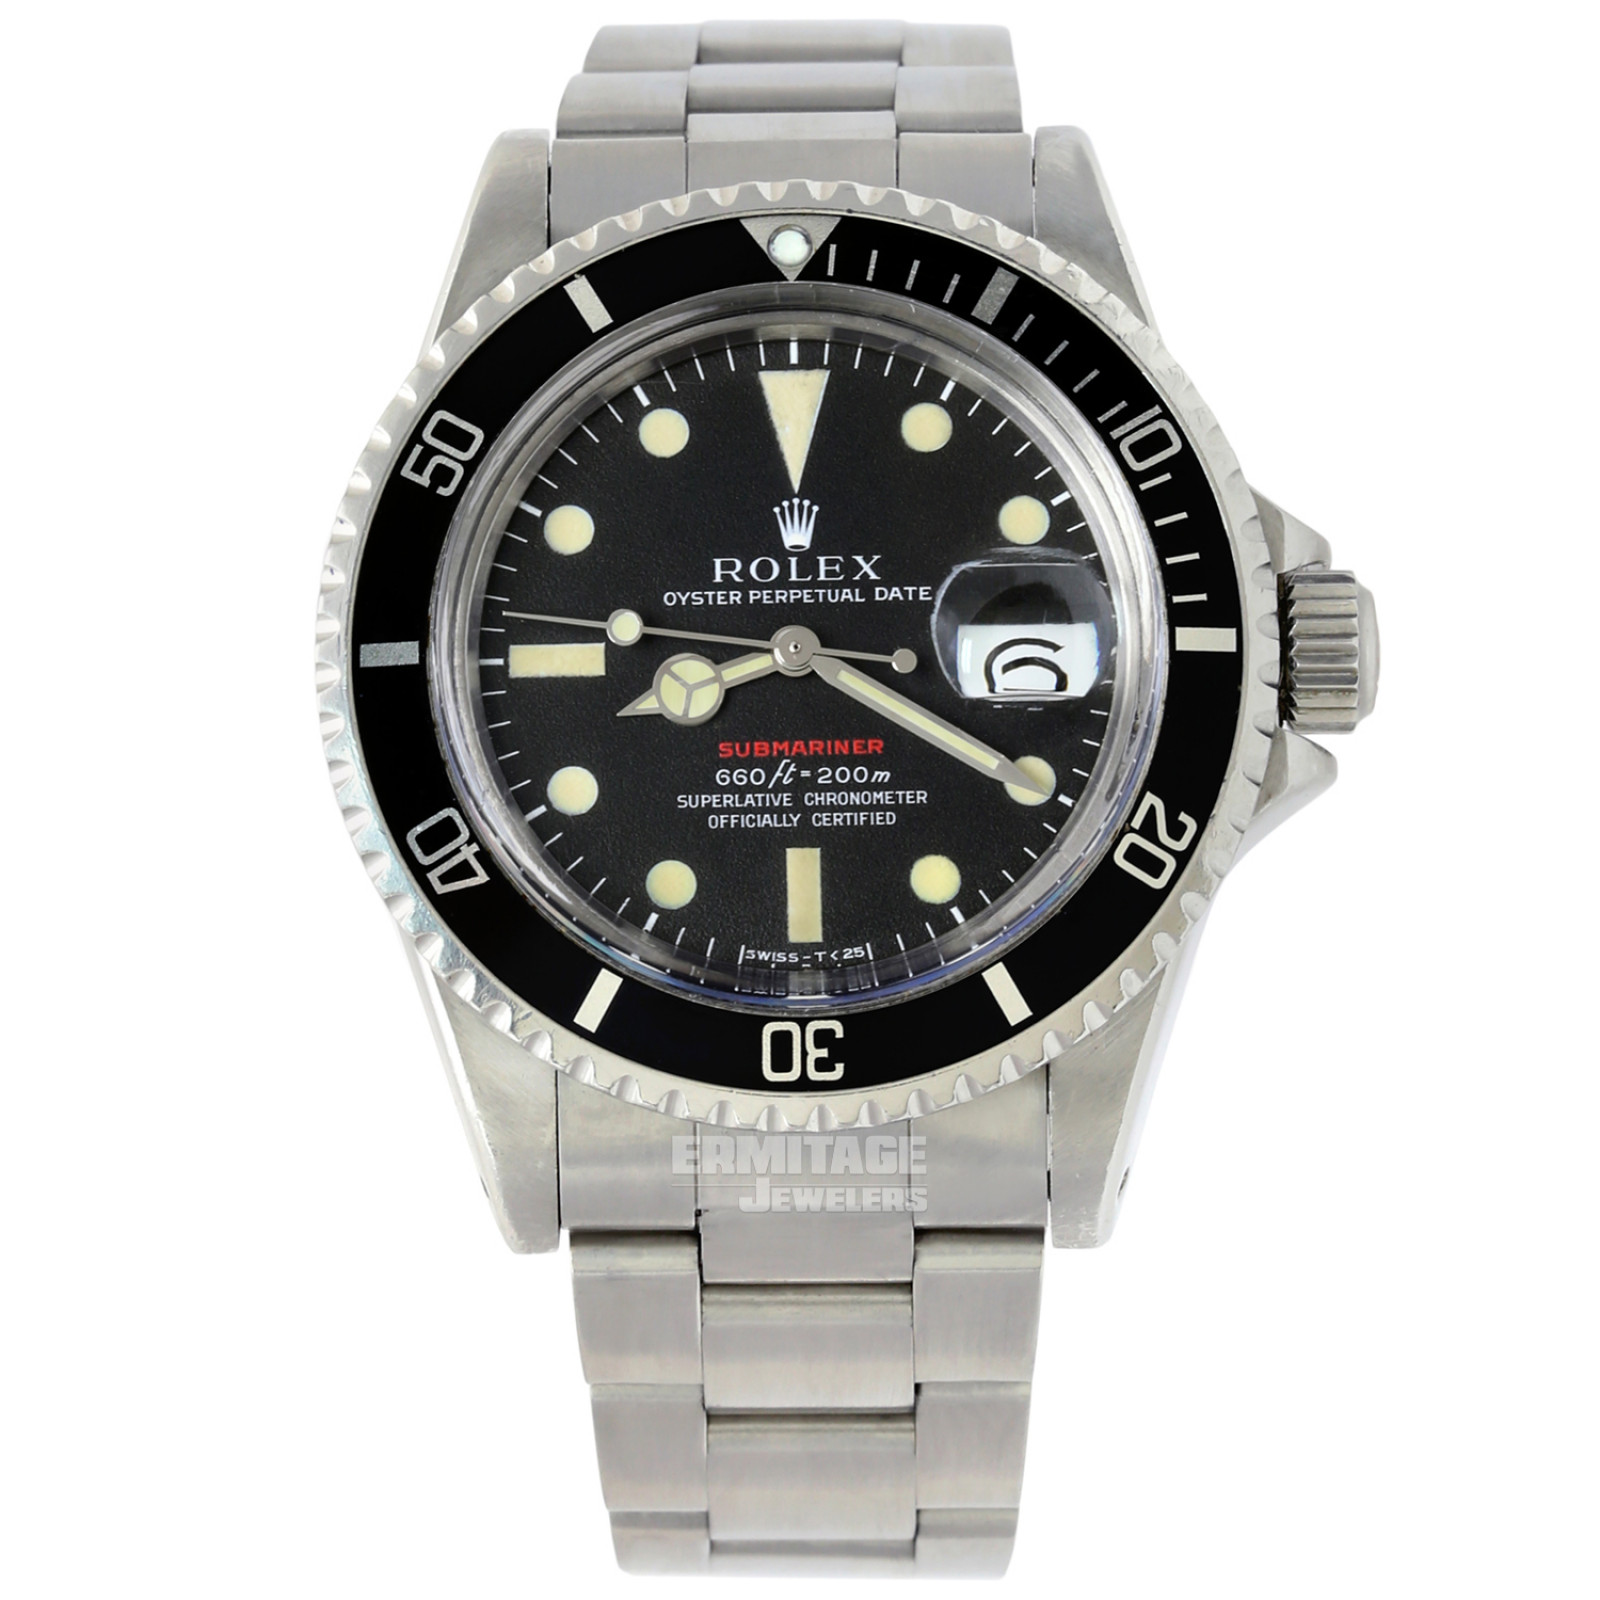 Mark 4 Vintage Rolex Submariner 1680